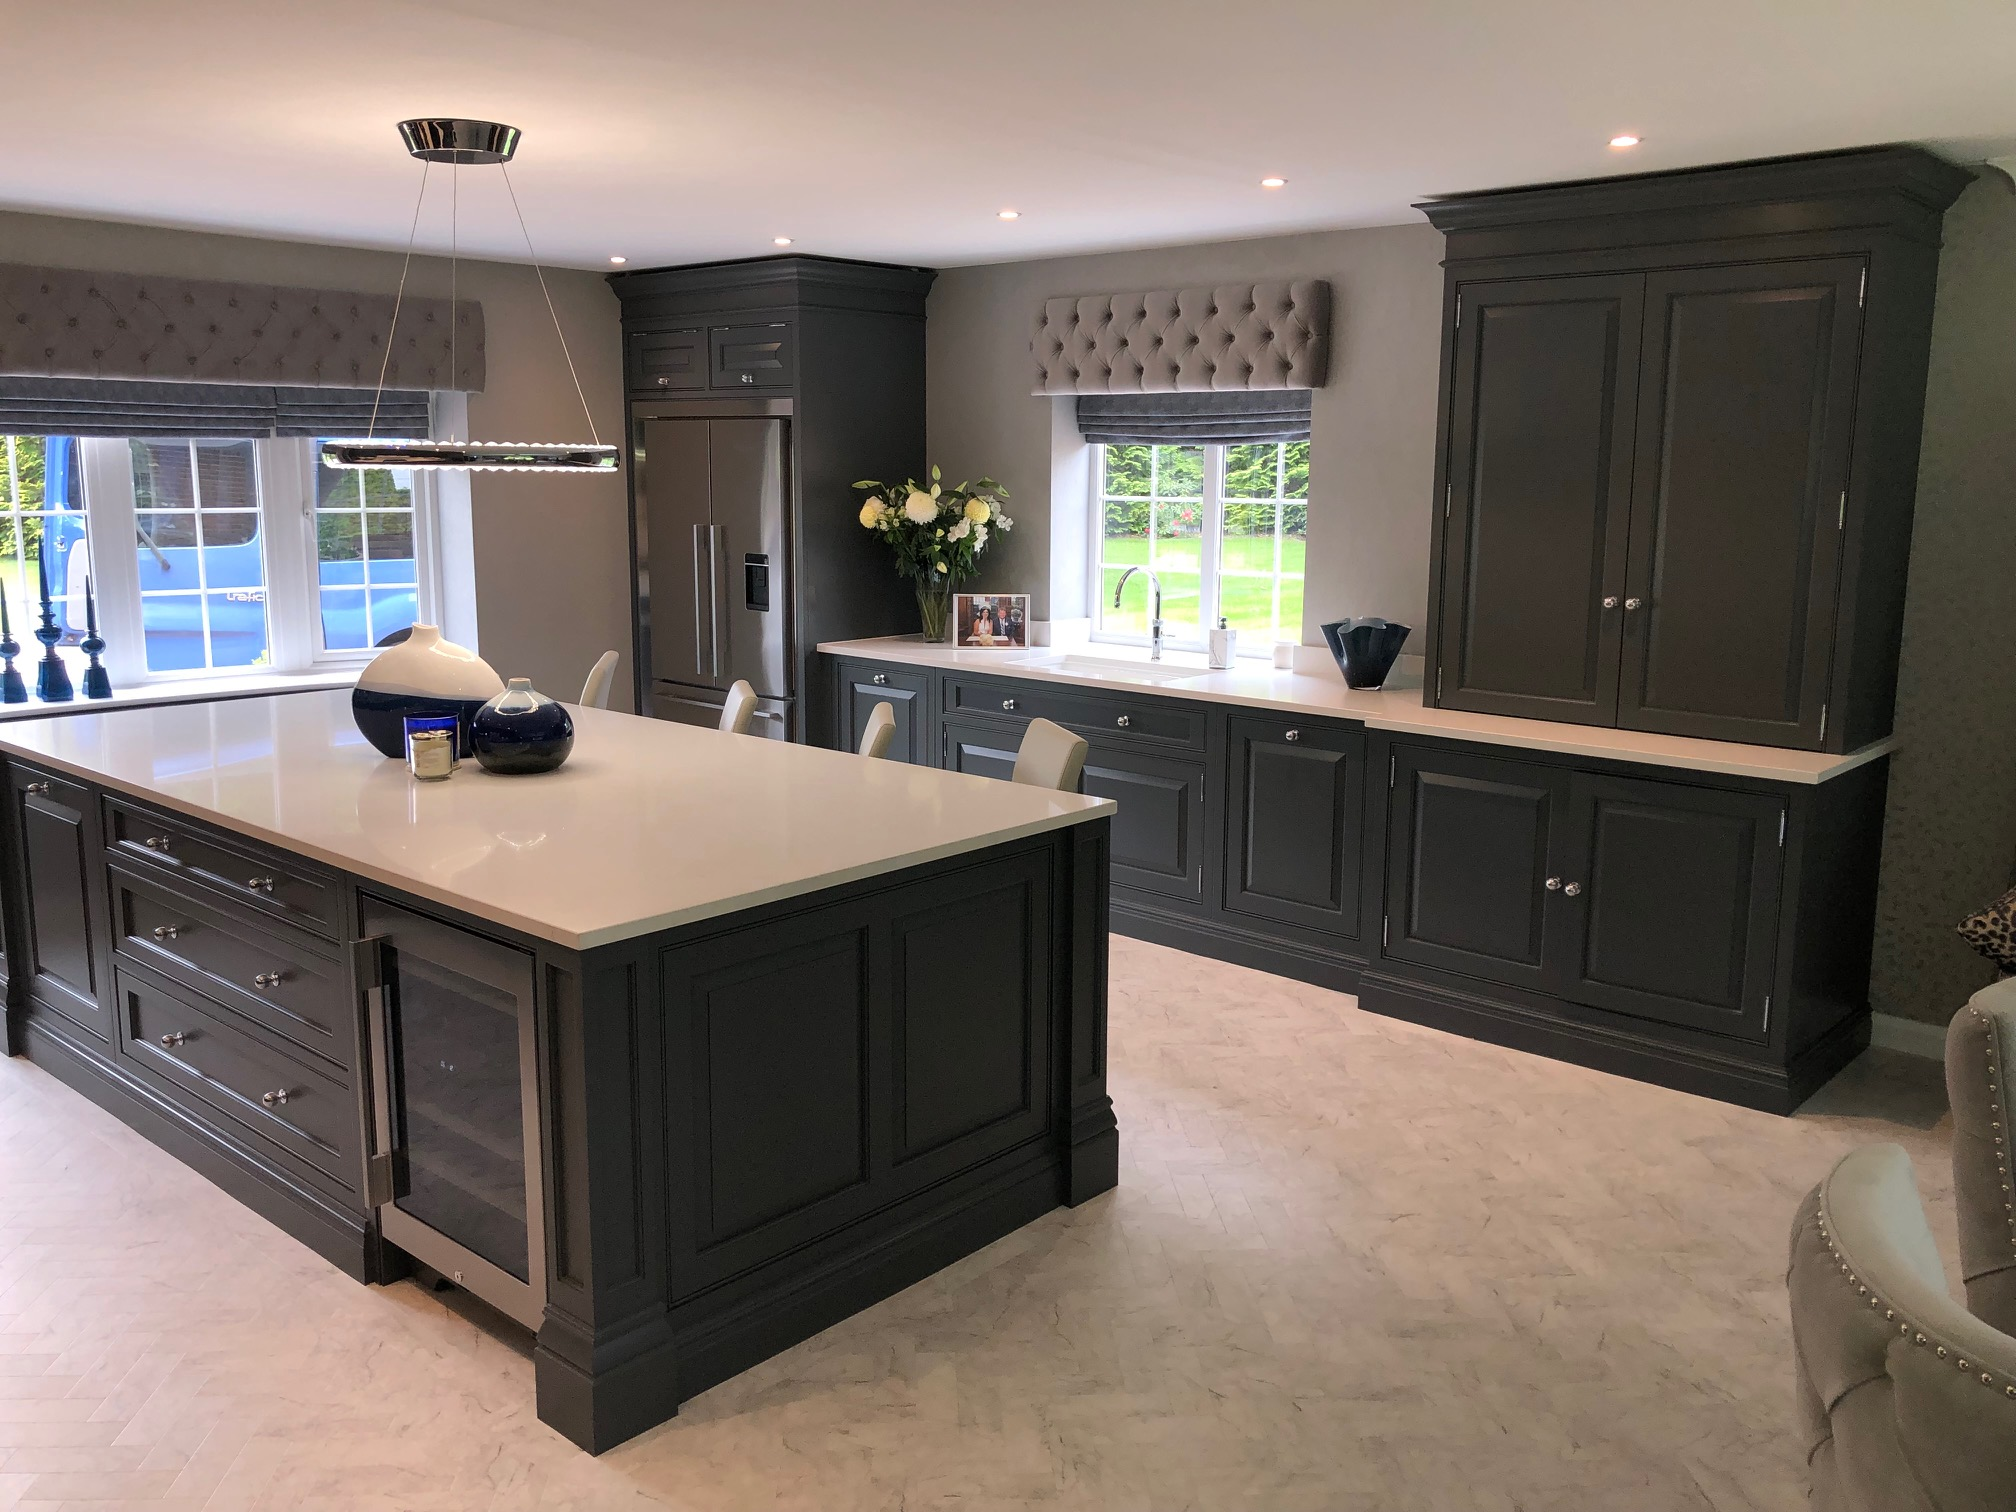 Hand painted bespoke Tom Howley kitchen in Cheshire